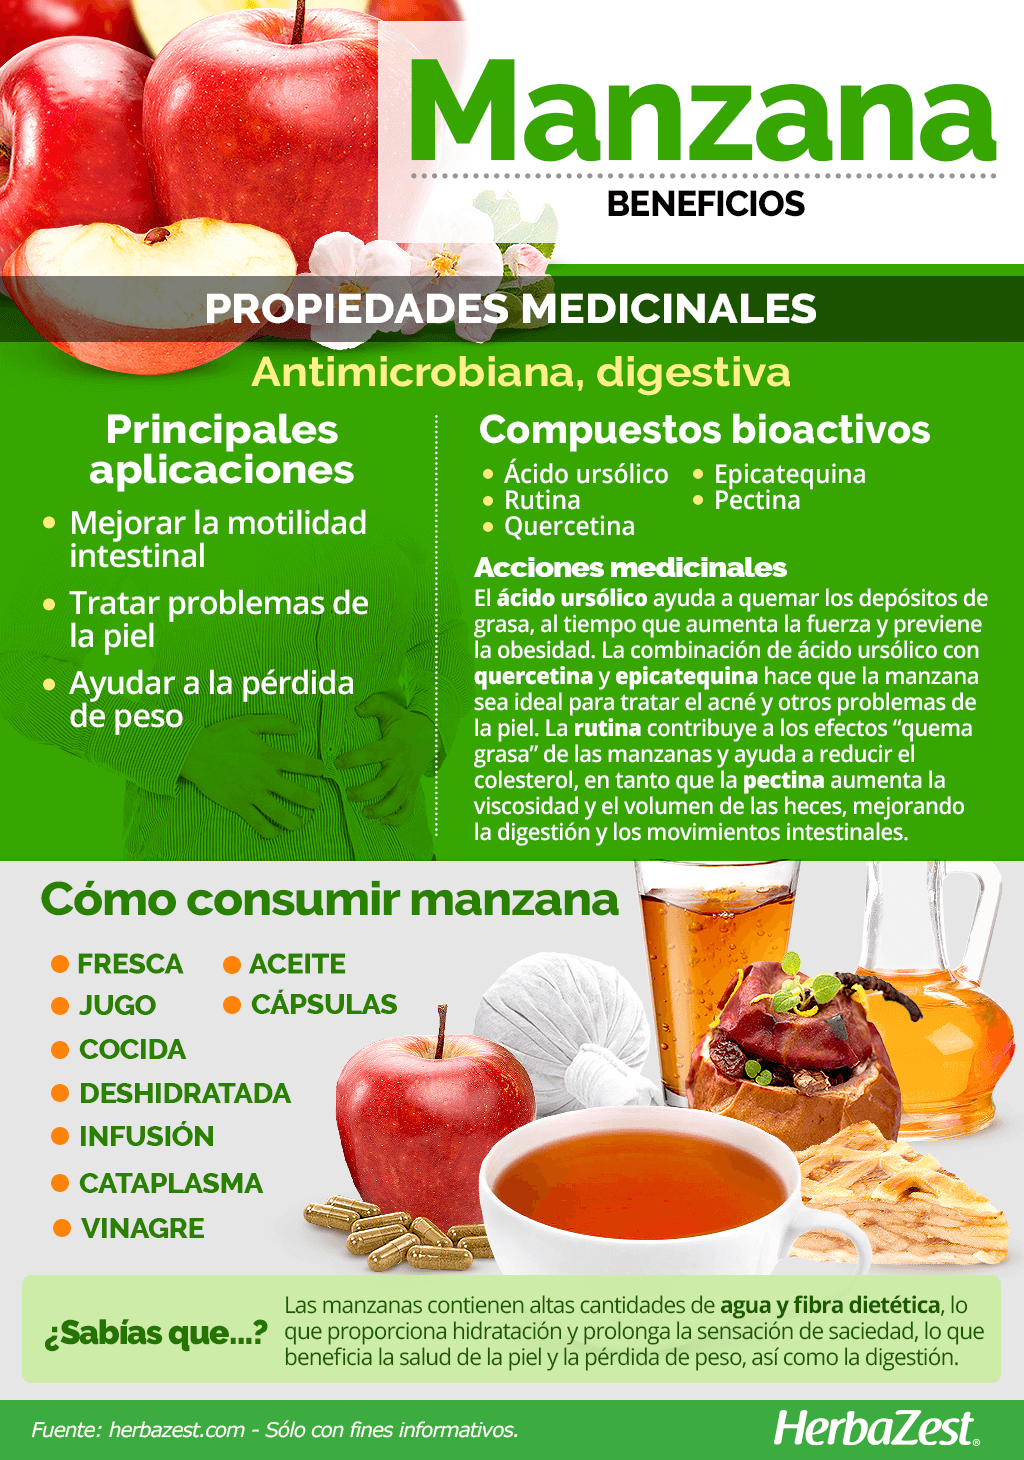 Beneficios de la manzana